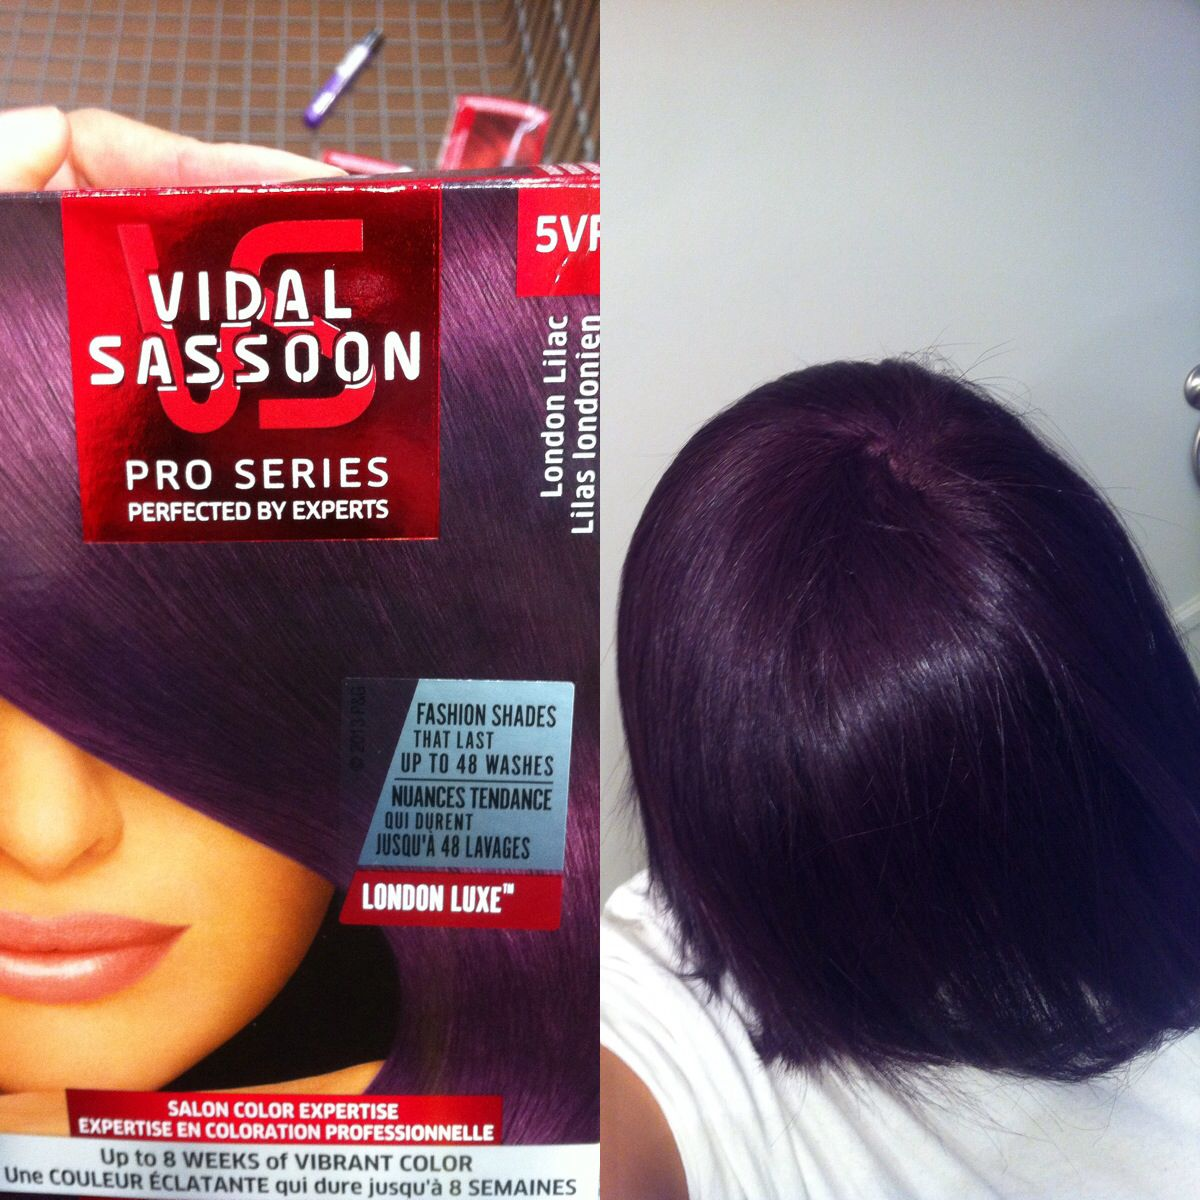 Vidal Sassoon London Lilac Purple Hair I Wanted It To Be A Little